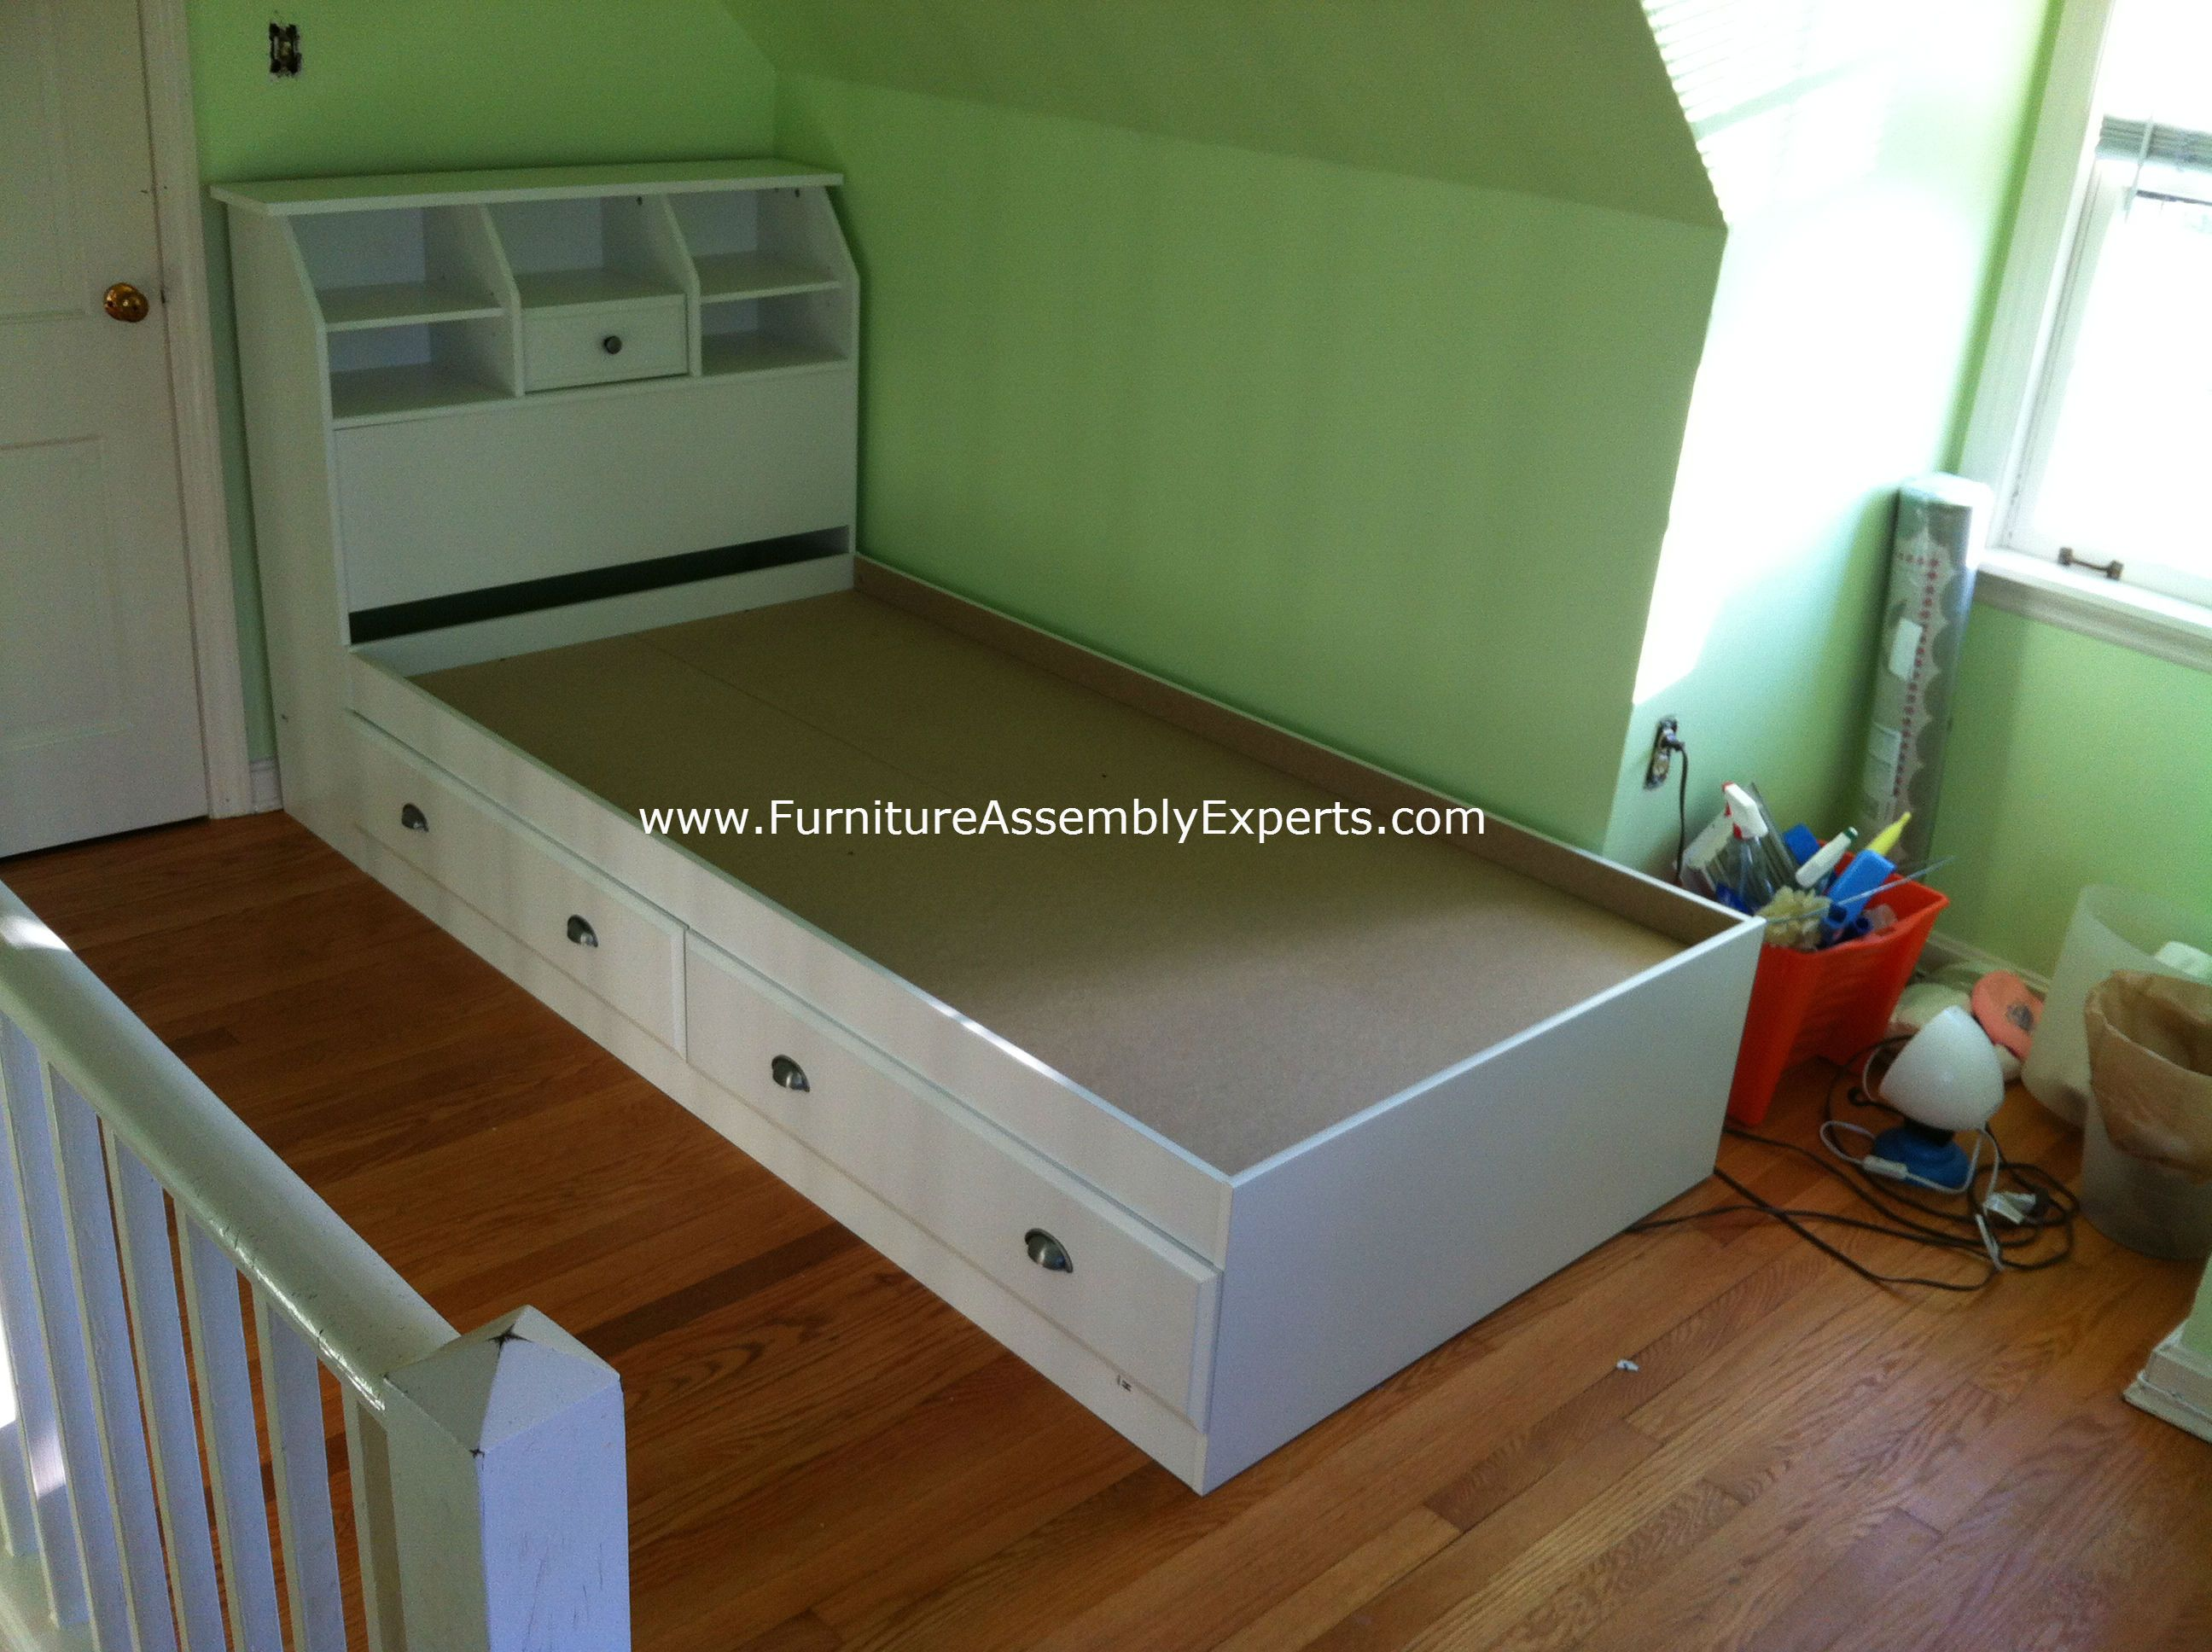 Captivating Walmart Twin Storage Bed With Headboard Assembled In Kensington Md By  Furniture Assembly Experts LLC